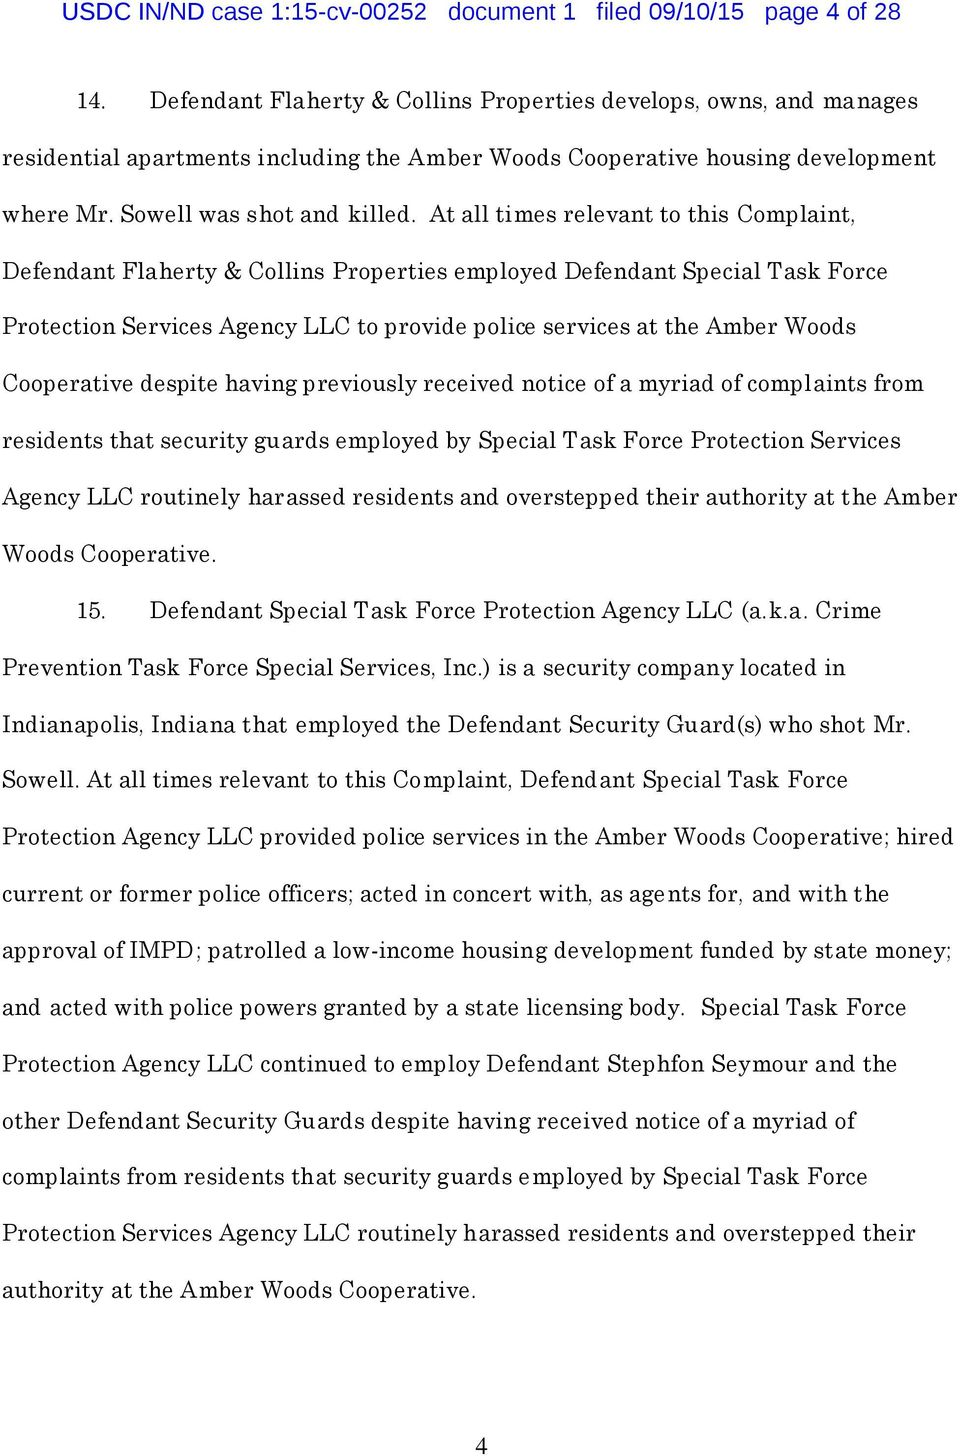 At all times relevant to this Complaint, Defendant Flaherty & Collins Properties employed Defendant Special Task Force Protection Services Agency LLC to provide police services at the Amber Woods